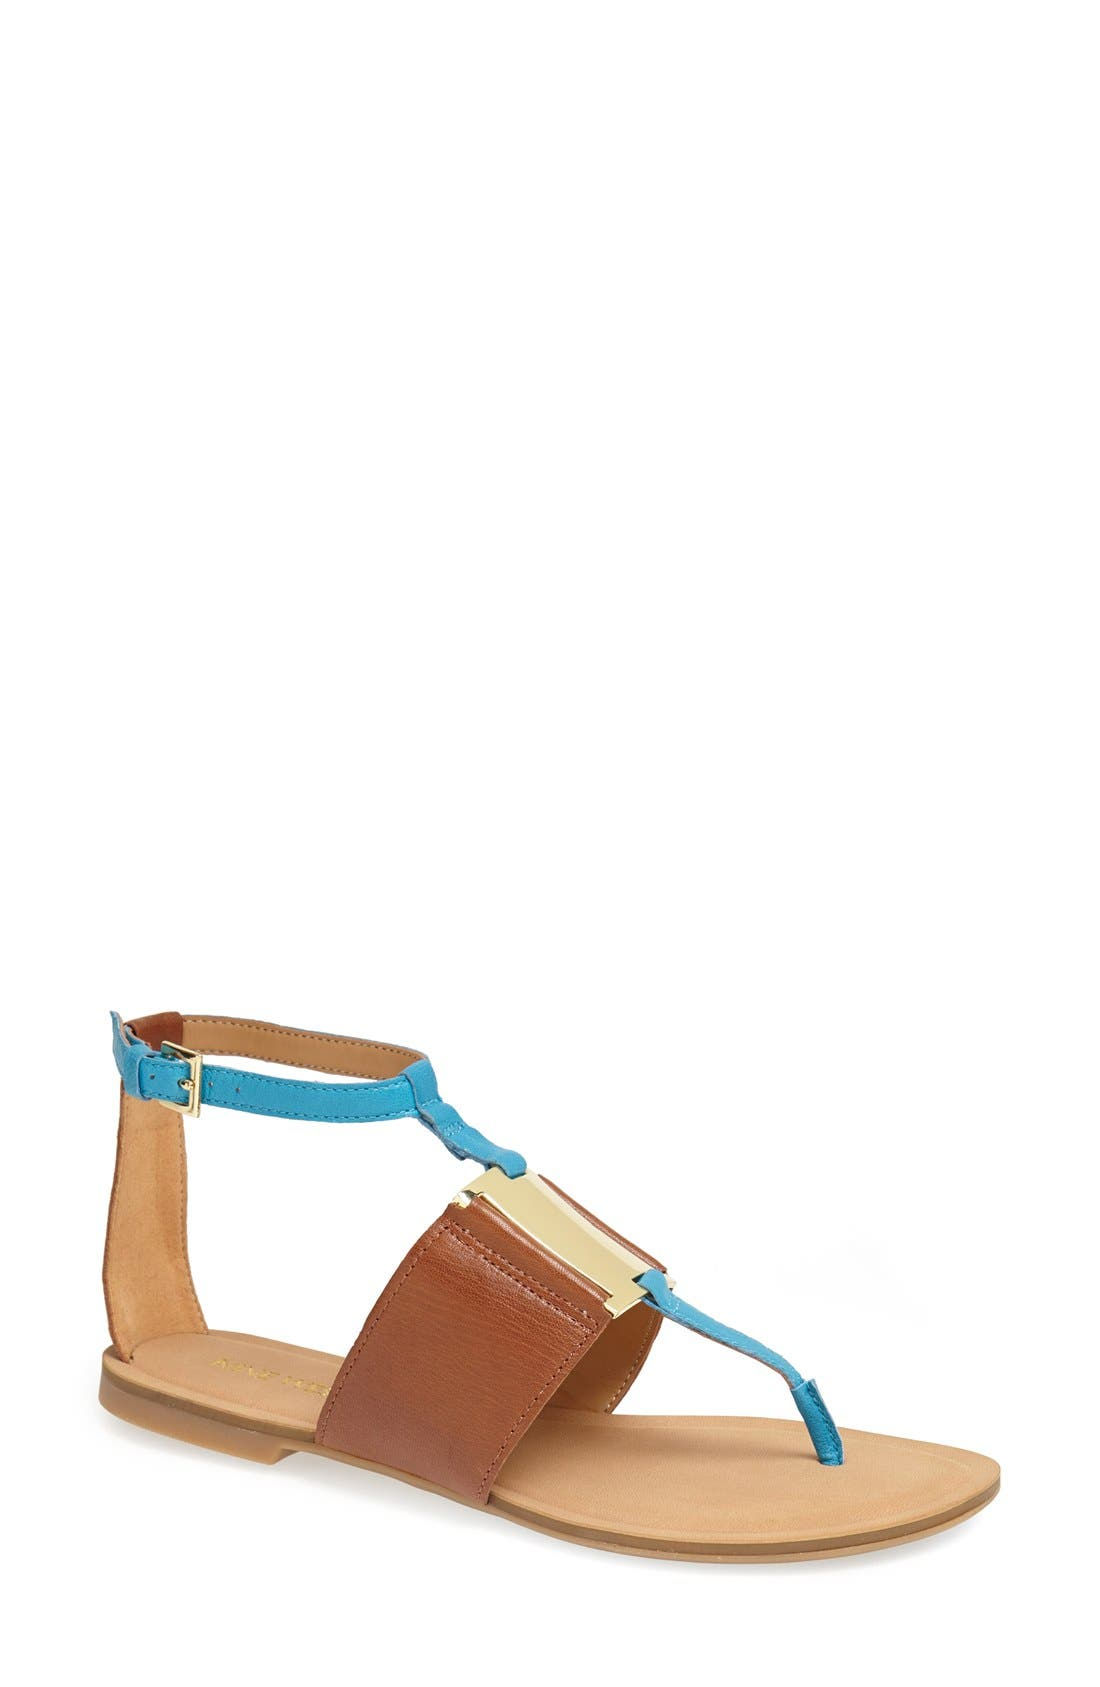 Main Image - Nine West 'Performac' Thong Sandal